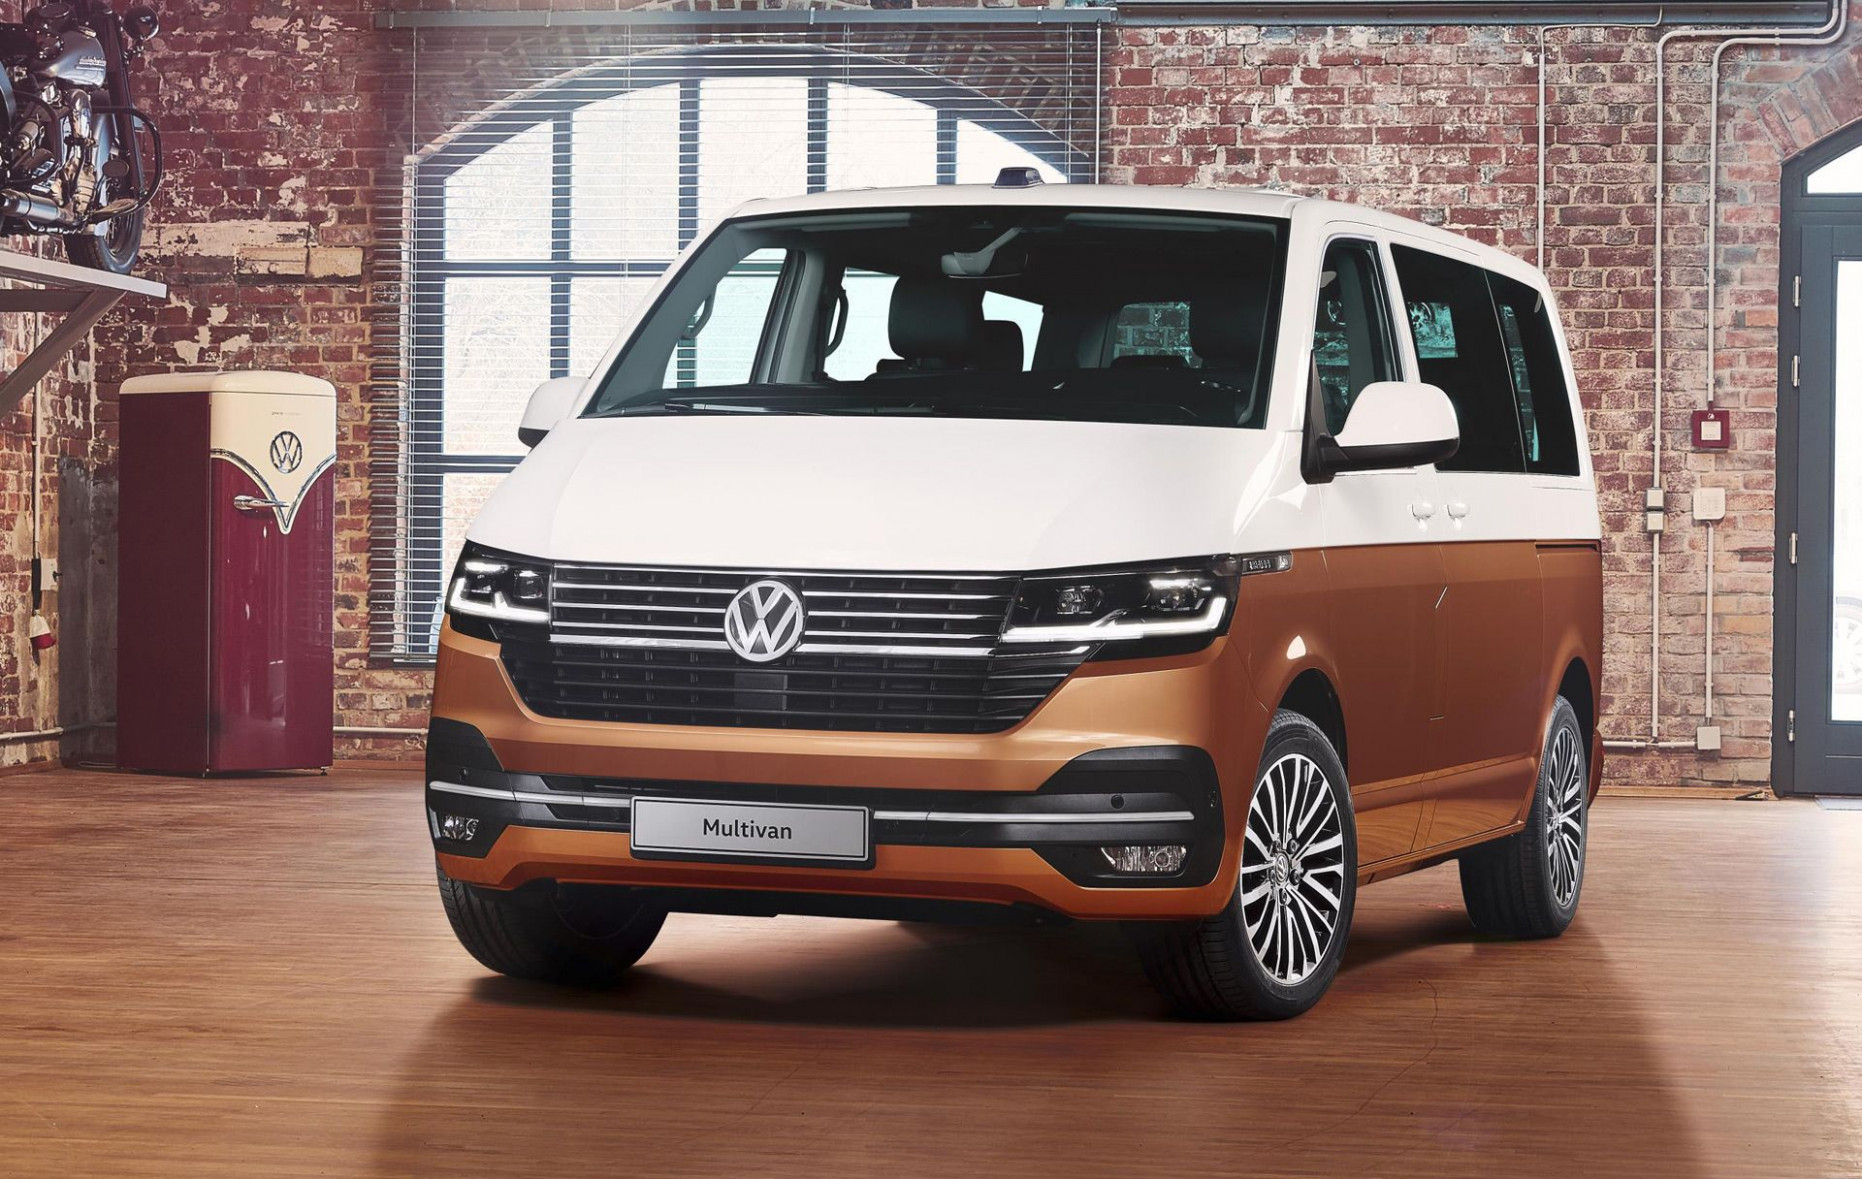 6 Volkswagen Transporter (T6.6) is the Bus we won't see ...